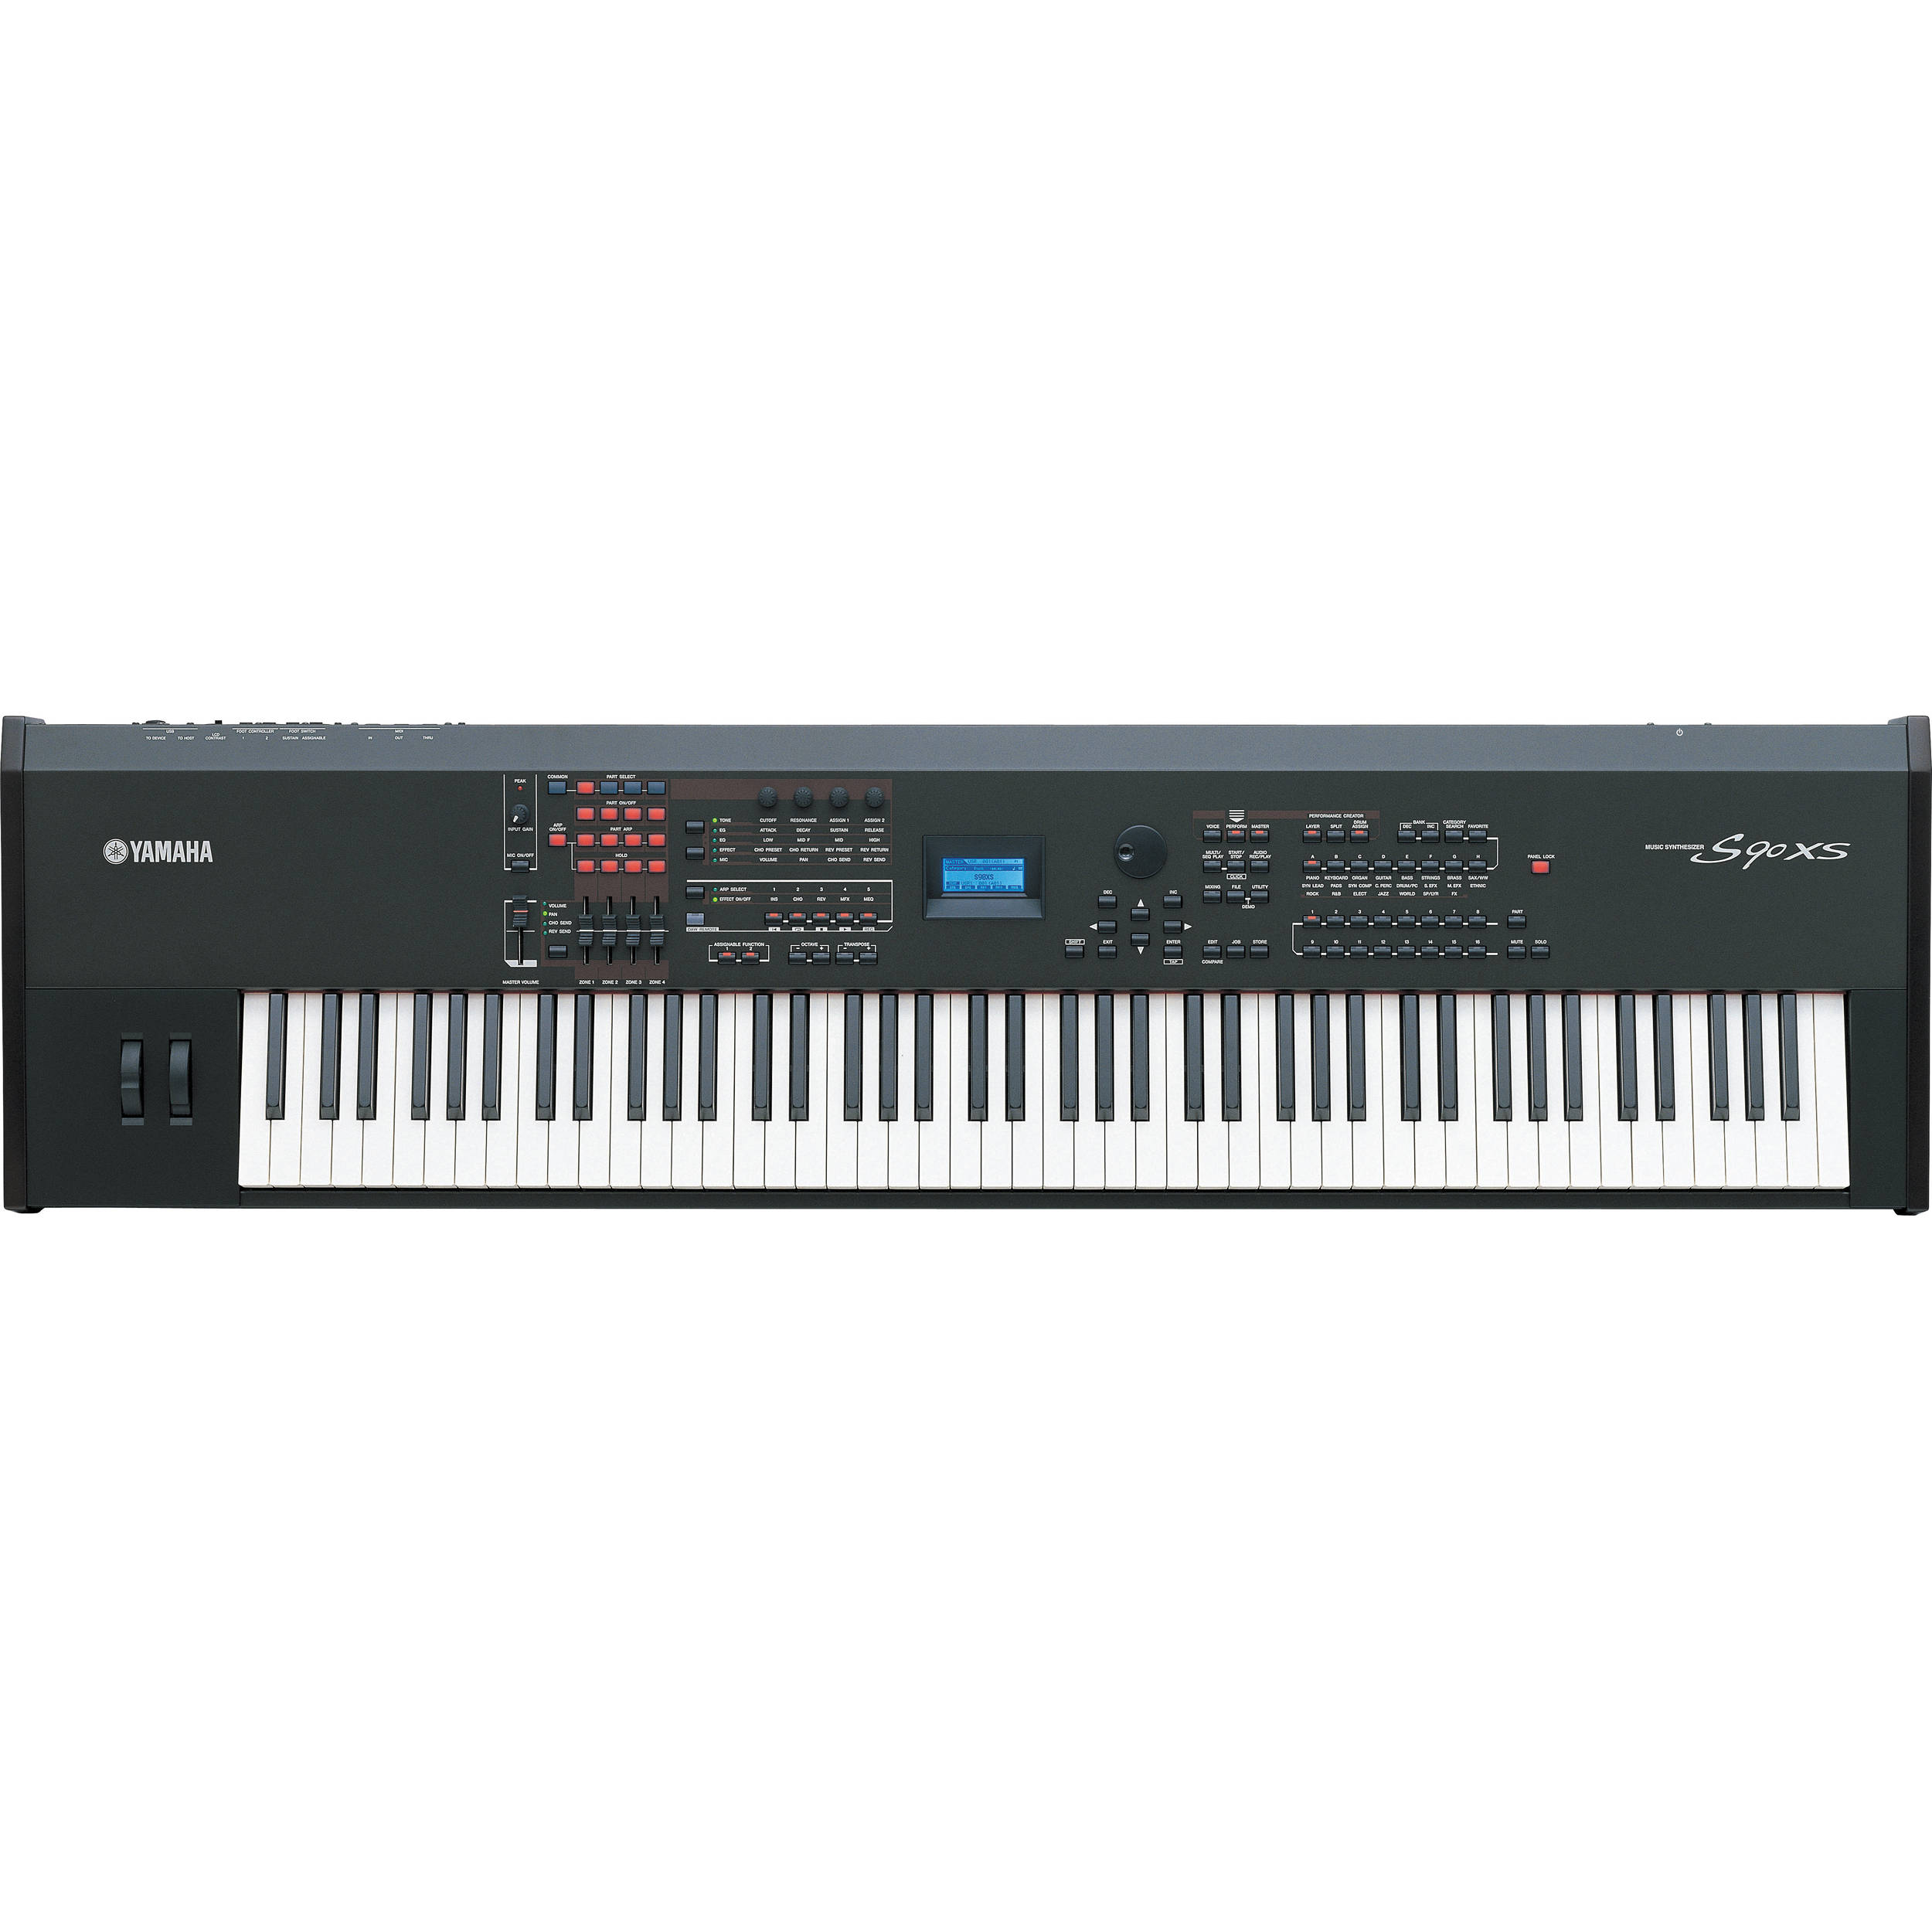 yamaha s90 xs 88 key hammer action performance s90xs b h photo rh bhphotovideo com yamaha keyboard s90xs manual yamaha s90xs manual download